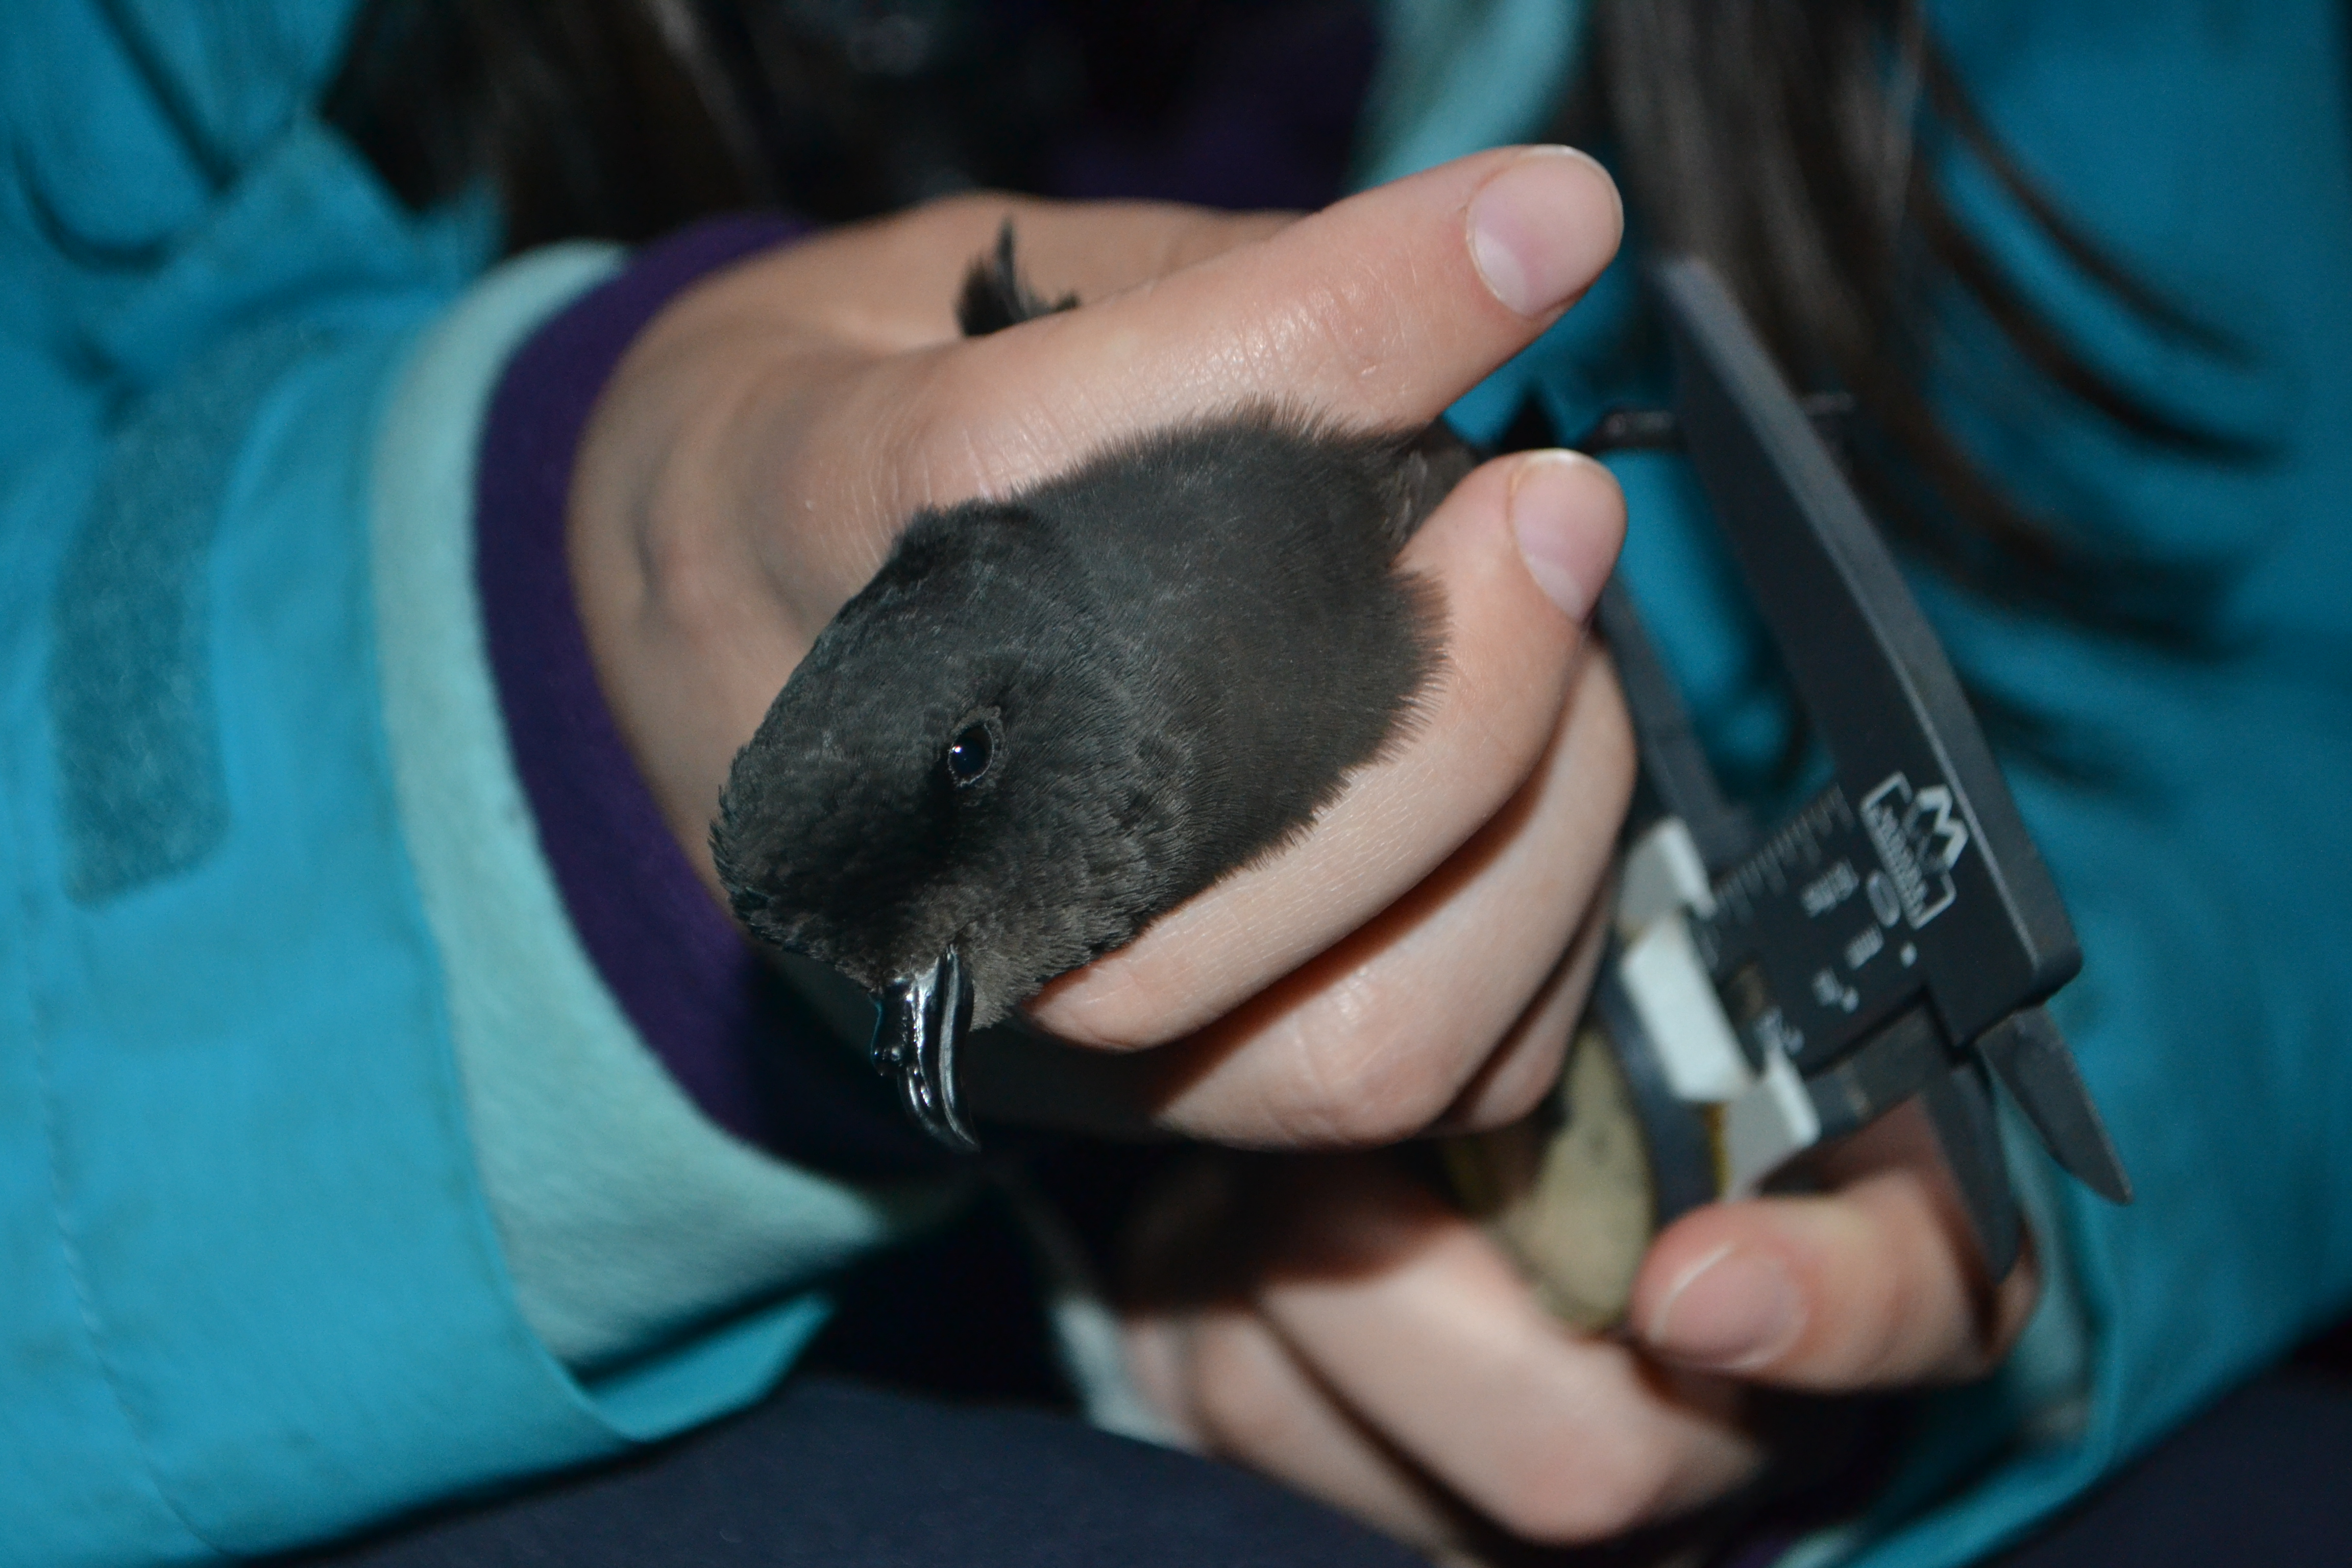 A Rocha Portugal has ringed > 5,000 European Storm-petrels as part of research into their survival strategies.